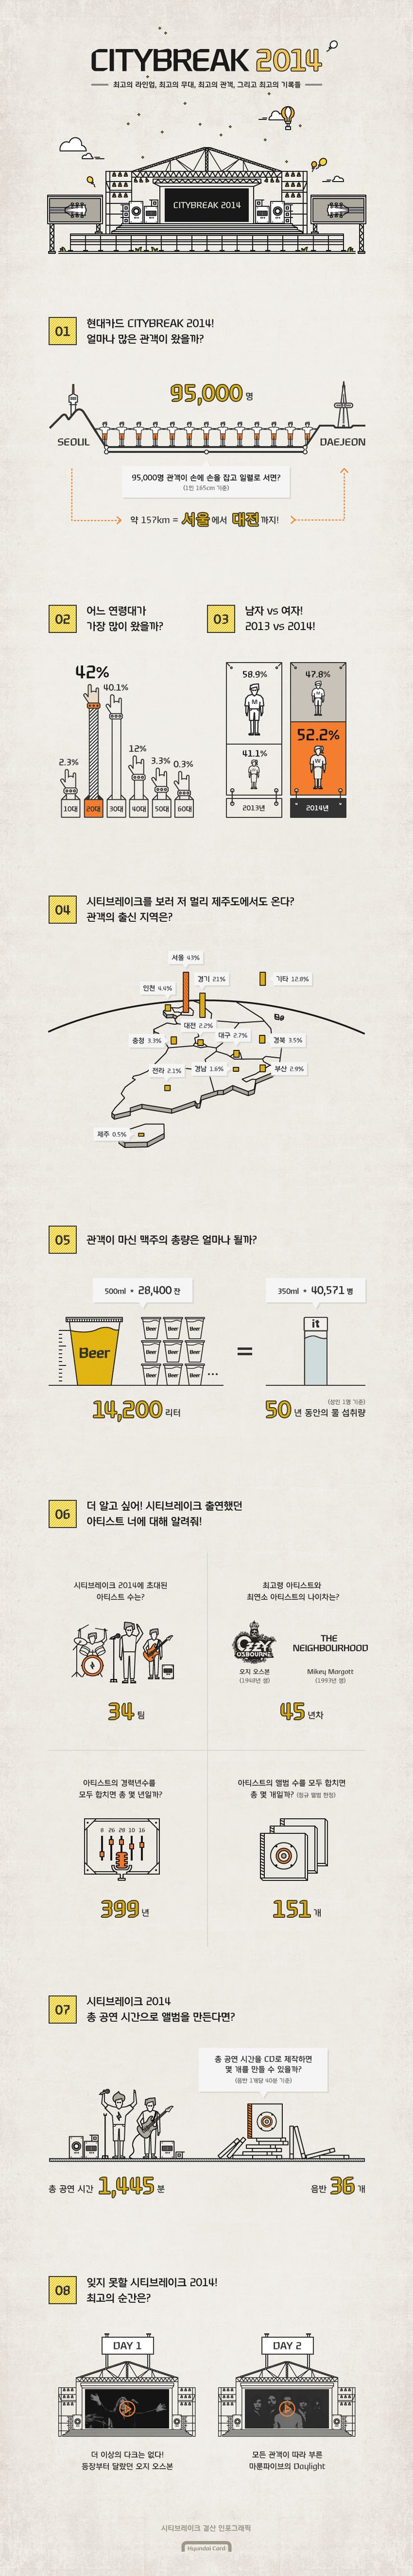 Hyundai Card Super Series After CITYBREAK 2014 info graphic  (라인 그래픽 참고  그래프 시각화 참고  Color  - yellow, orange, black)